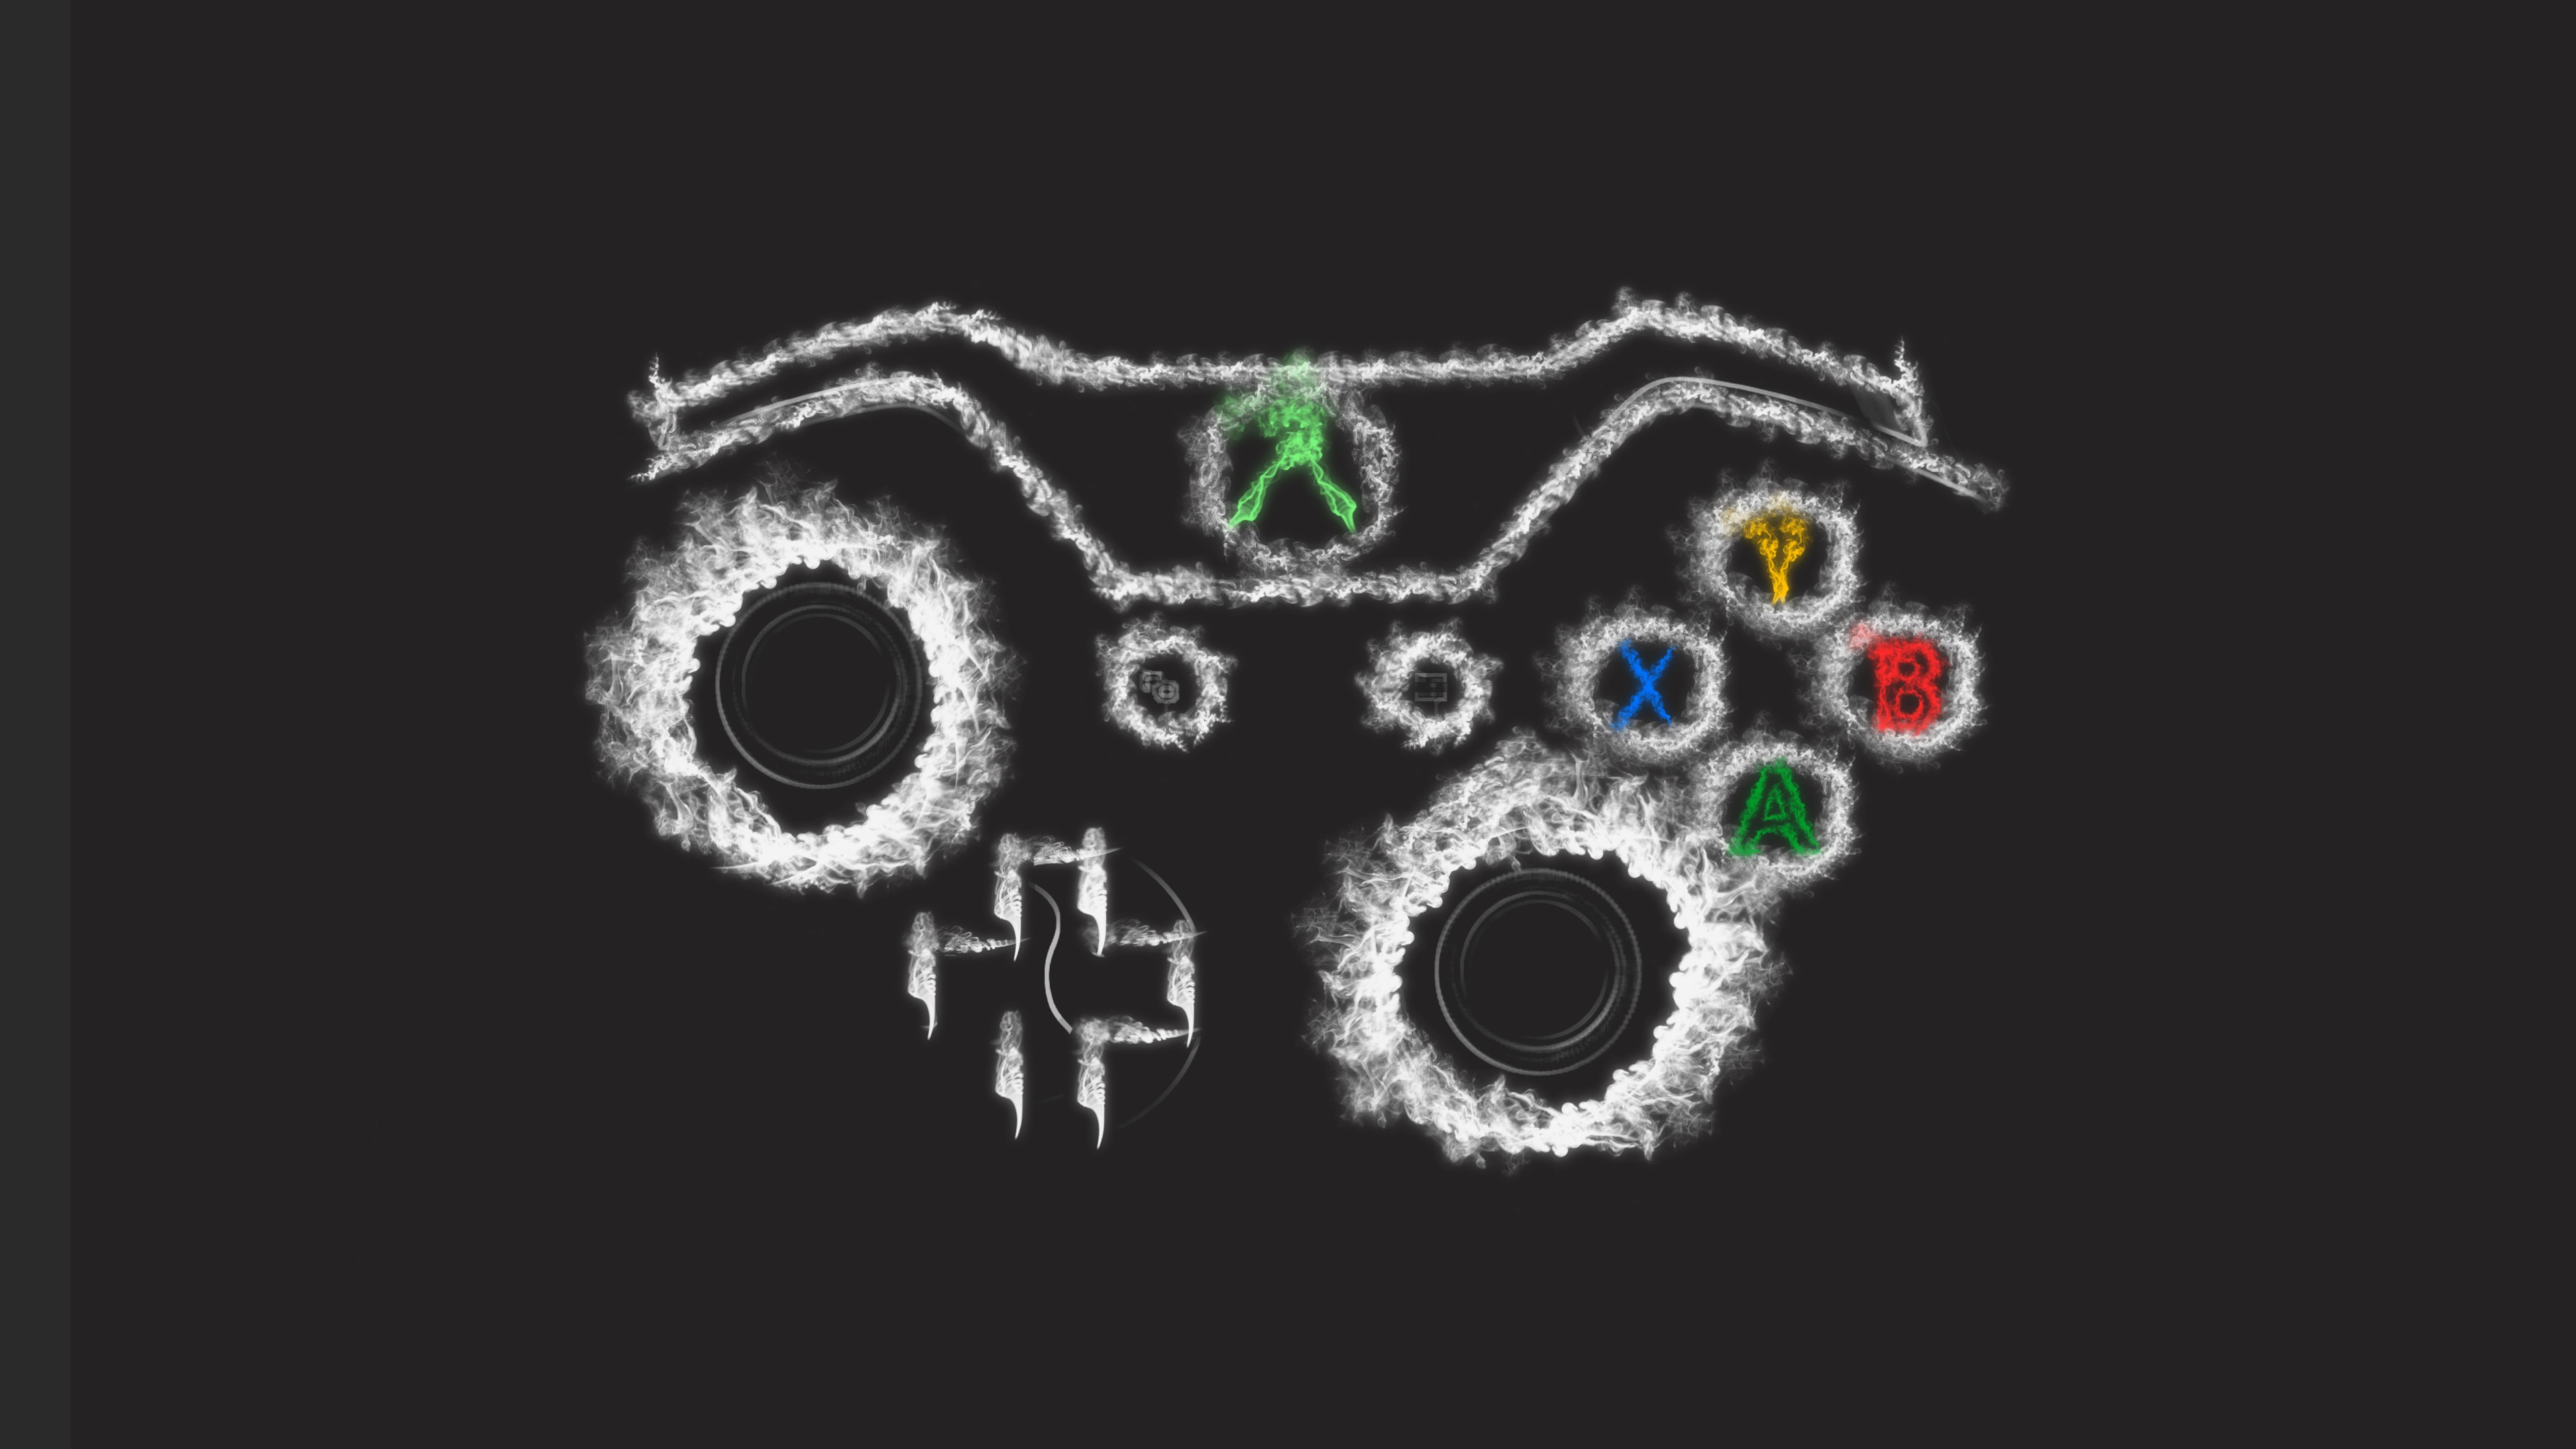 Xbox Controller Art 2048x1152 Resolution